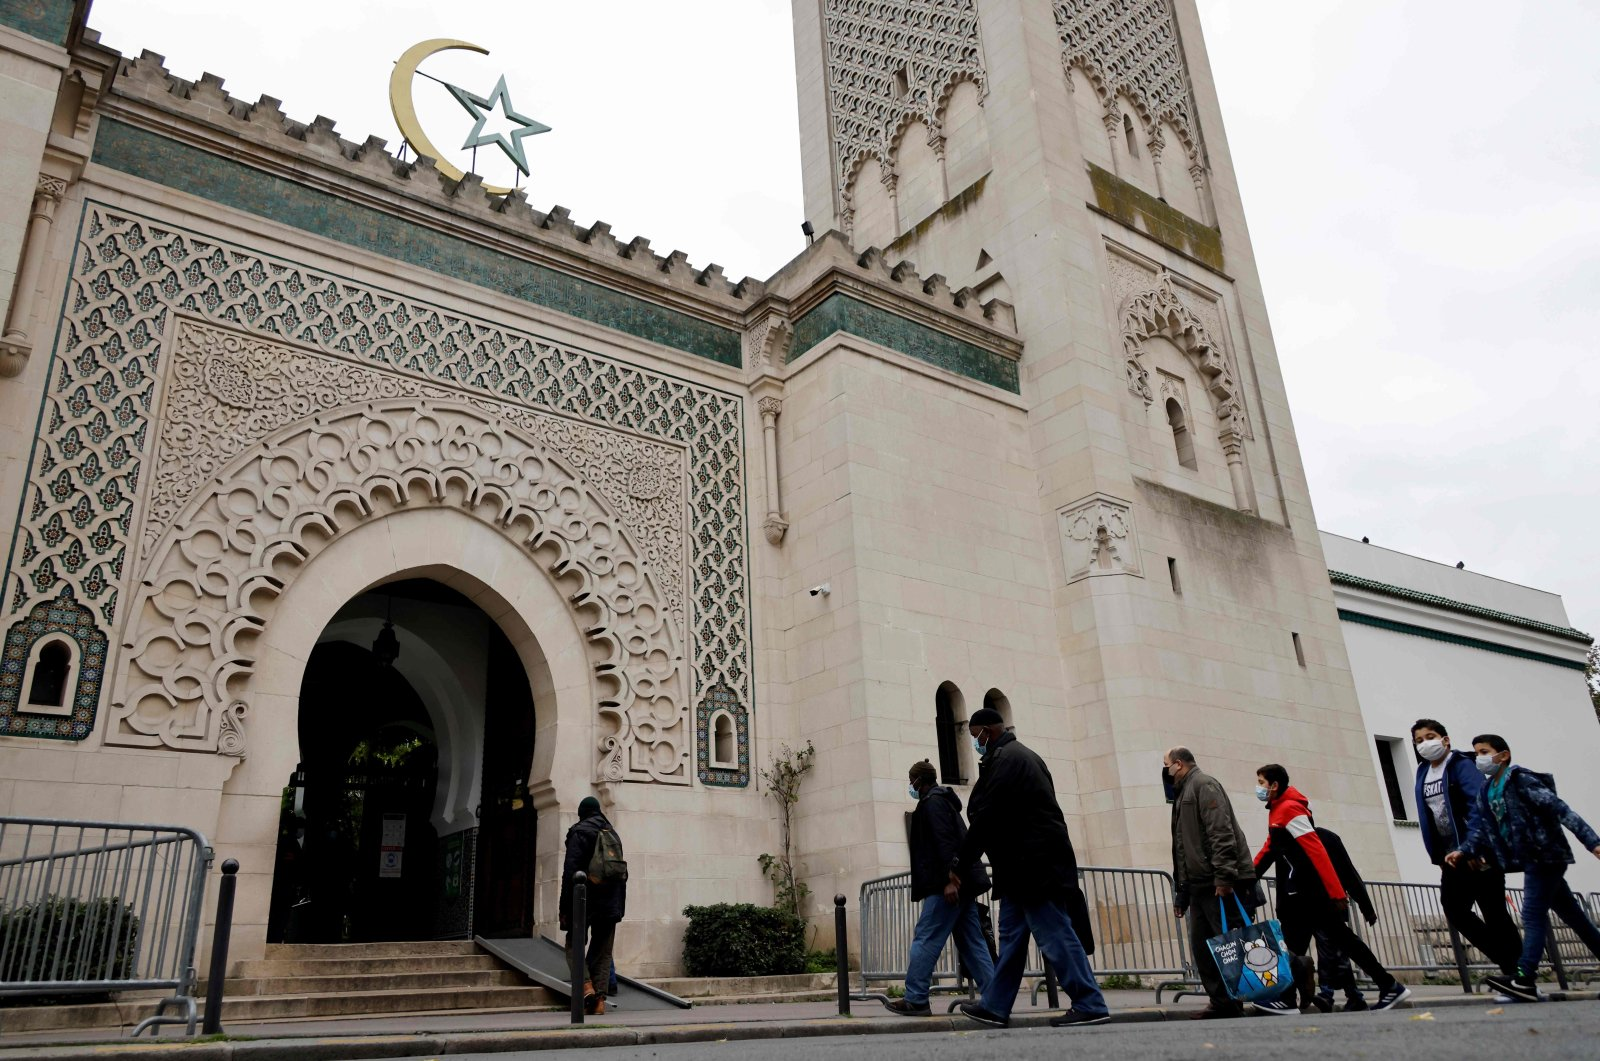 Muslims arrive at the Great Mosque of Paris for the friday prayers, France, Oct. 30, 2020. (AFP Photo)